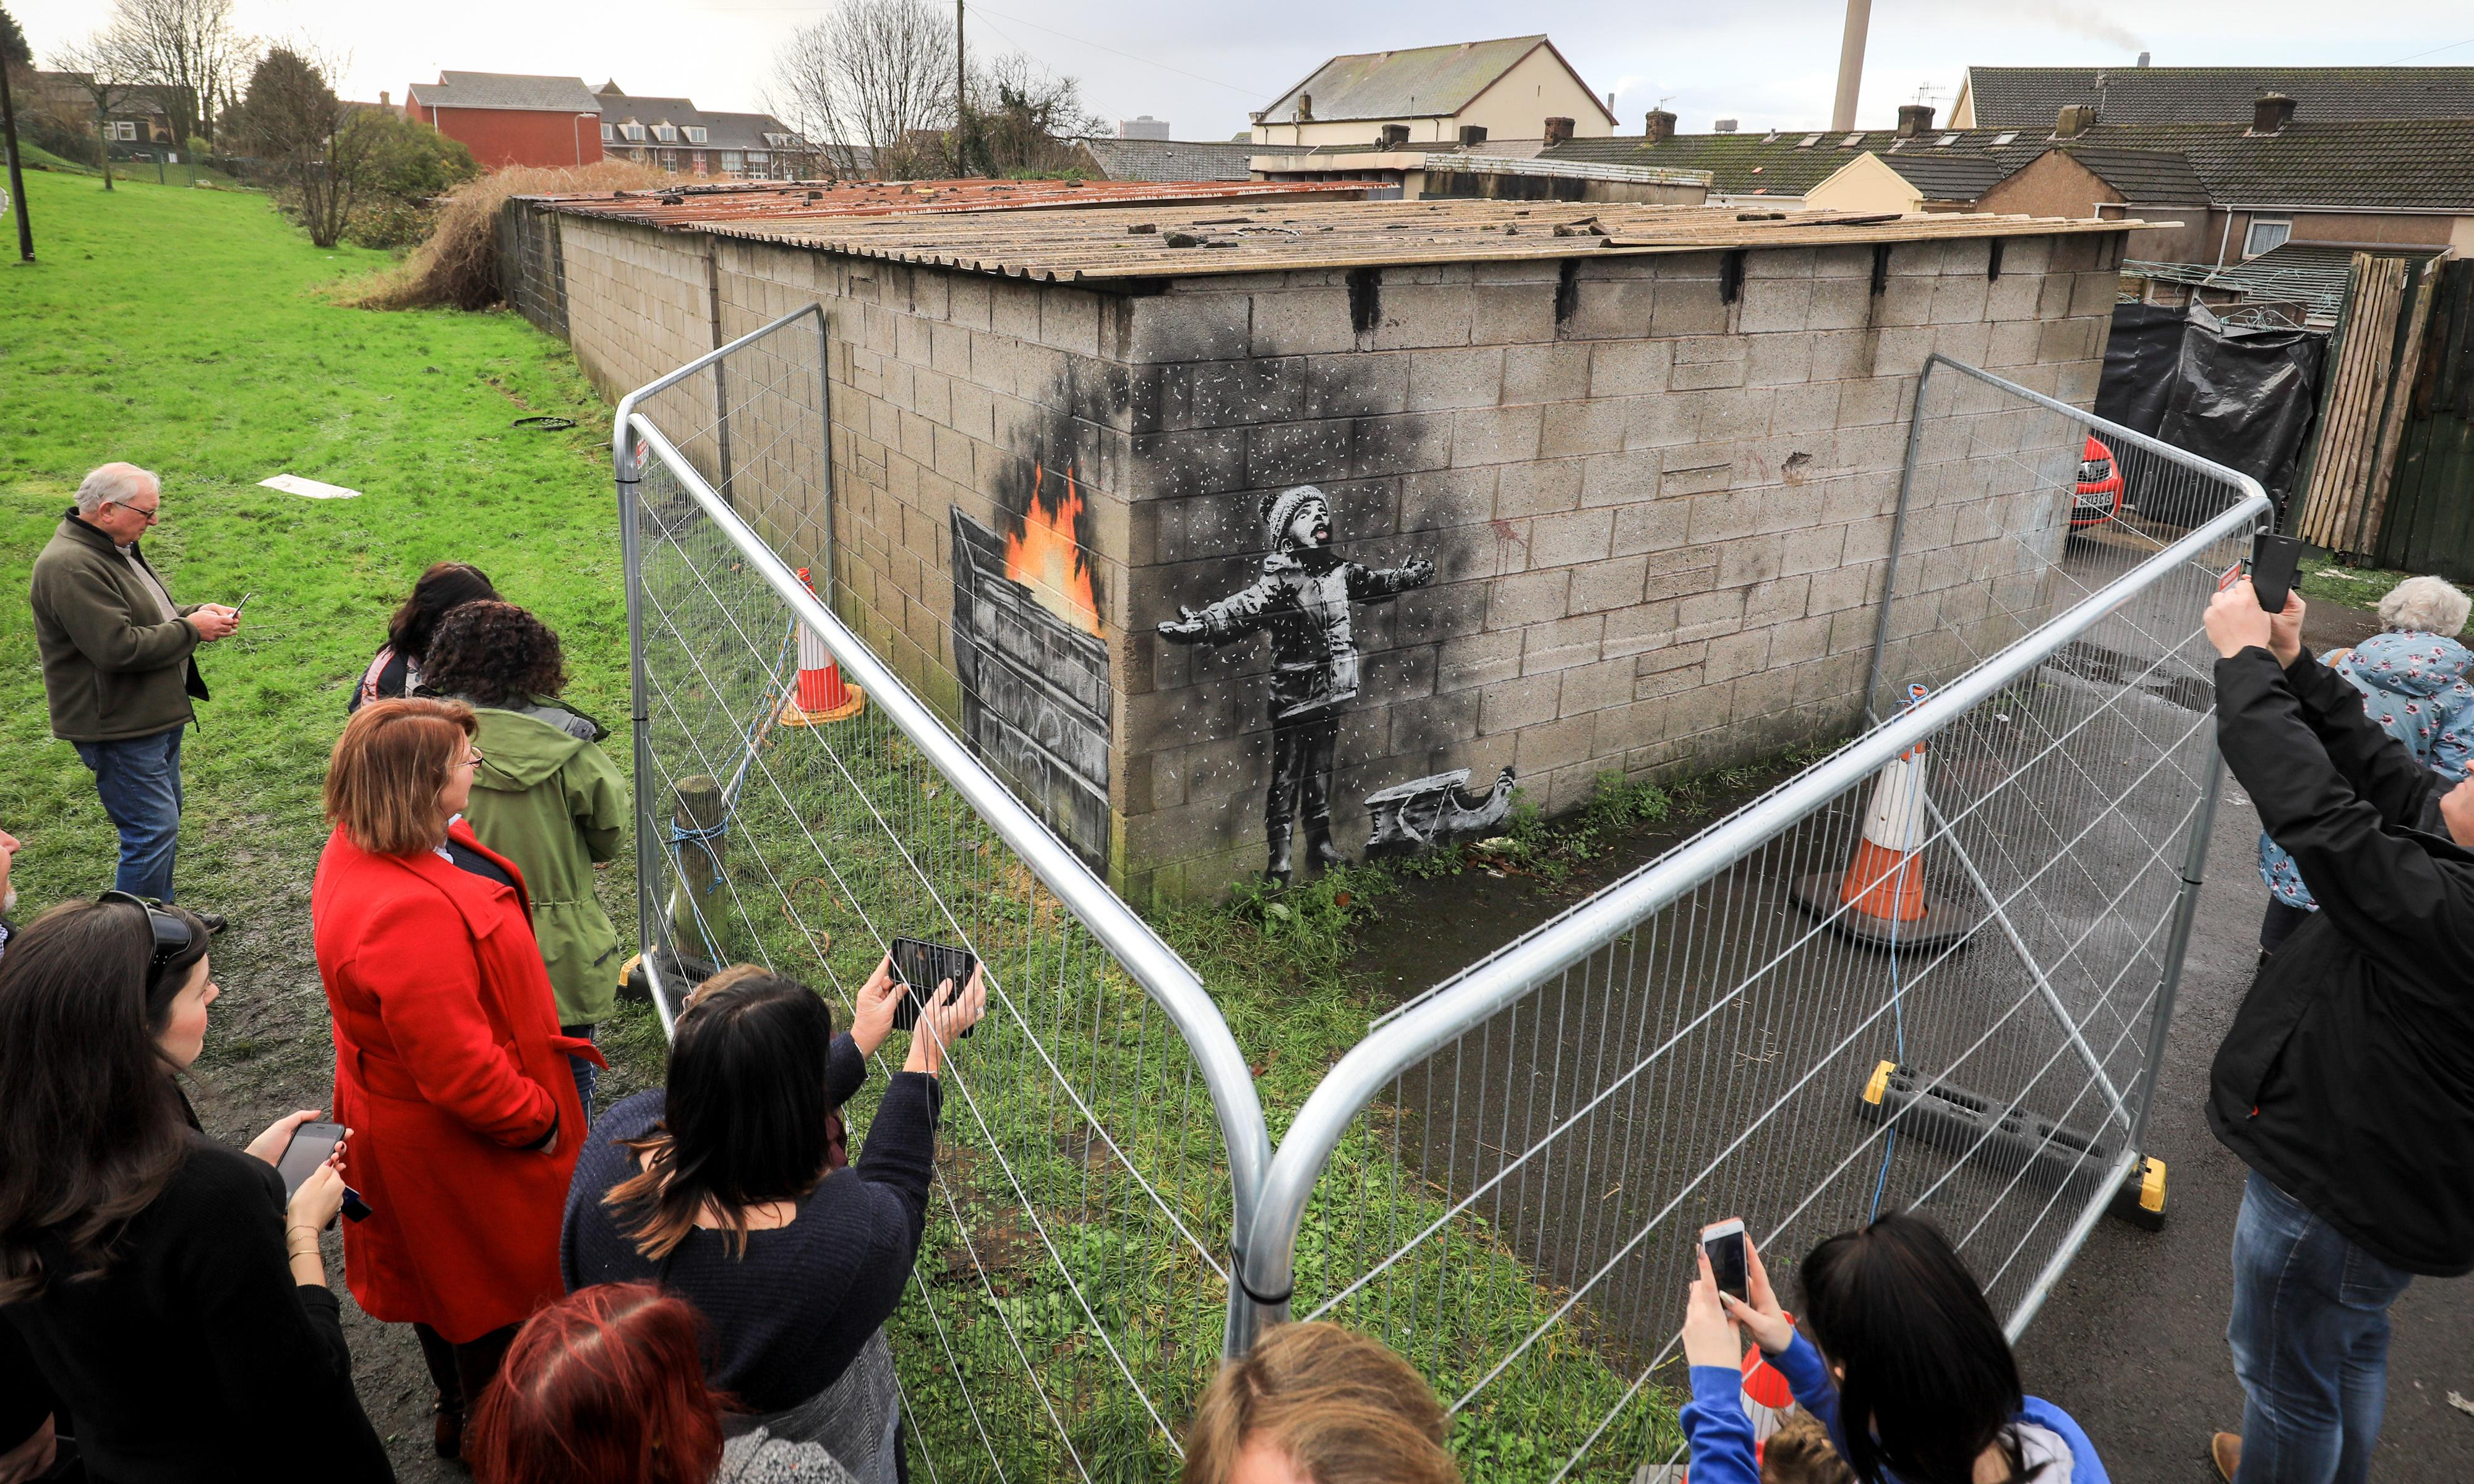 Port Talbot's Banksy to be moved to new street art museum